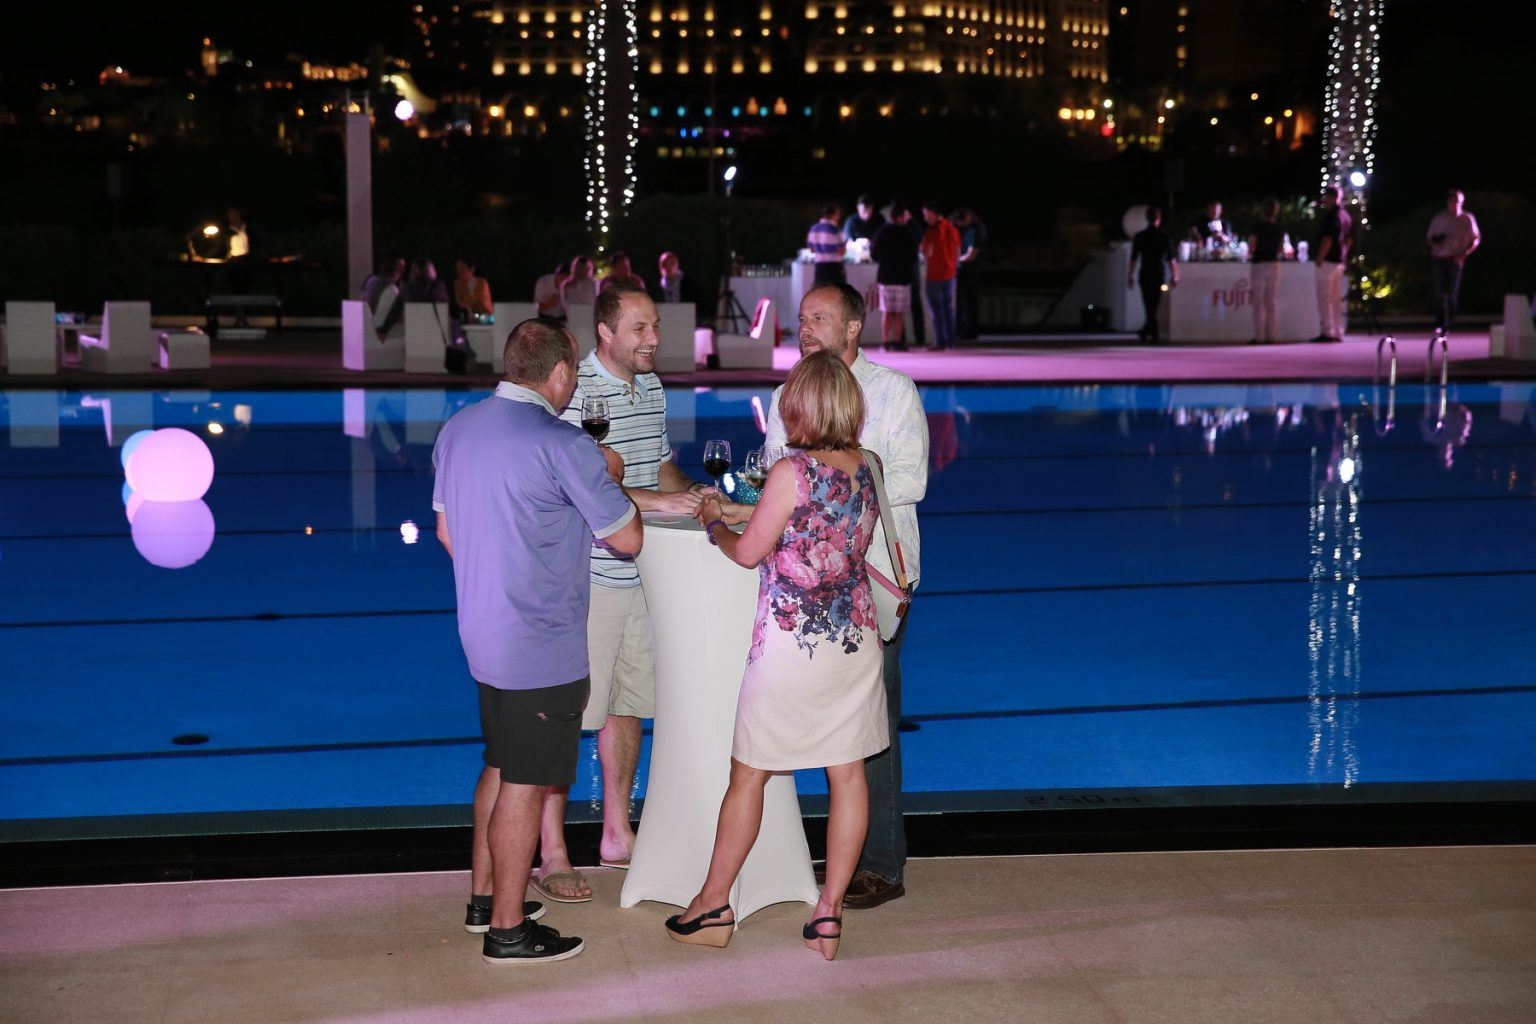 Le Deck Monte Carlo Pool Evening 35 - Le Deck Monte Carlo Pool Evening